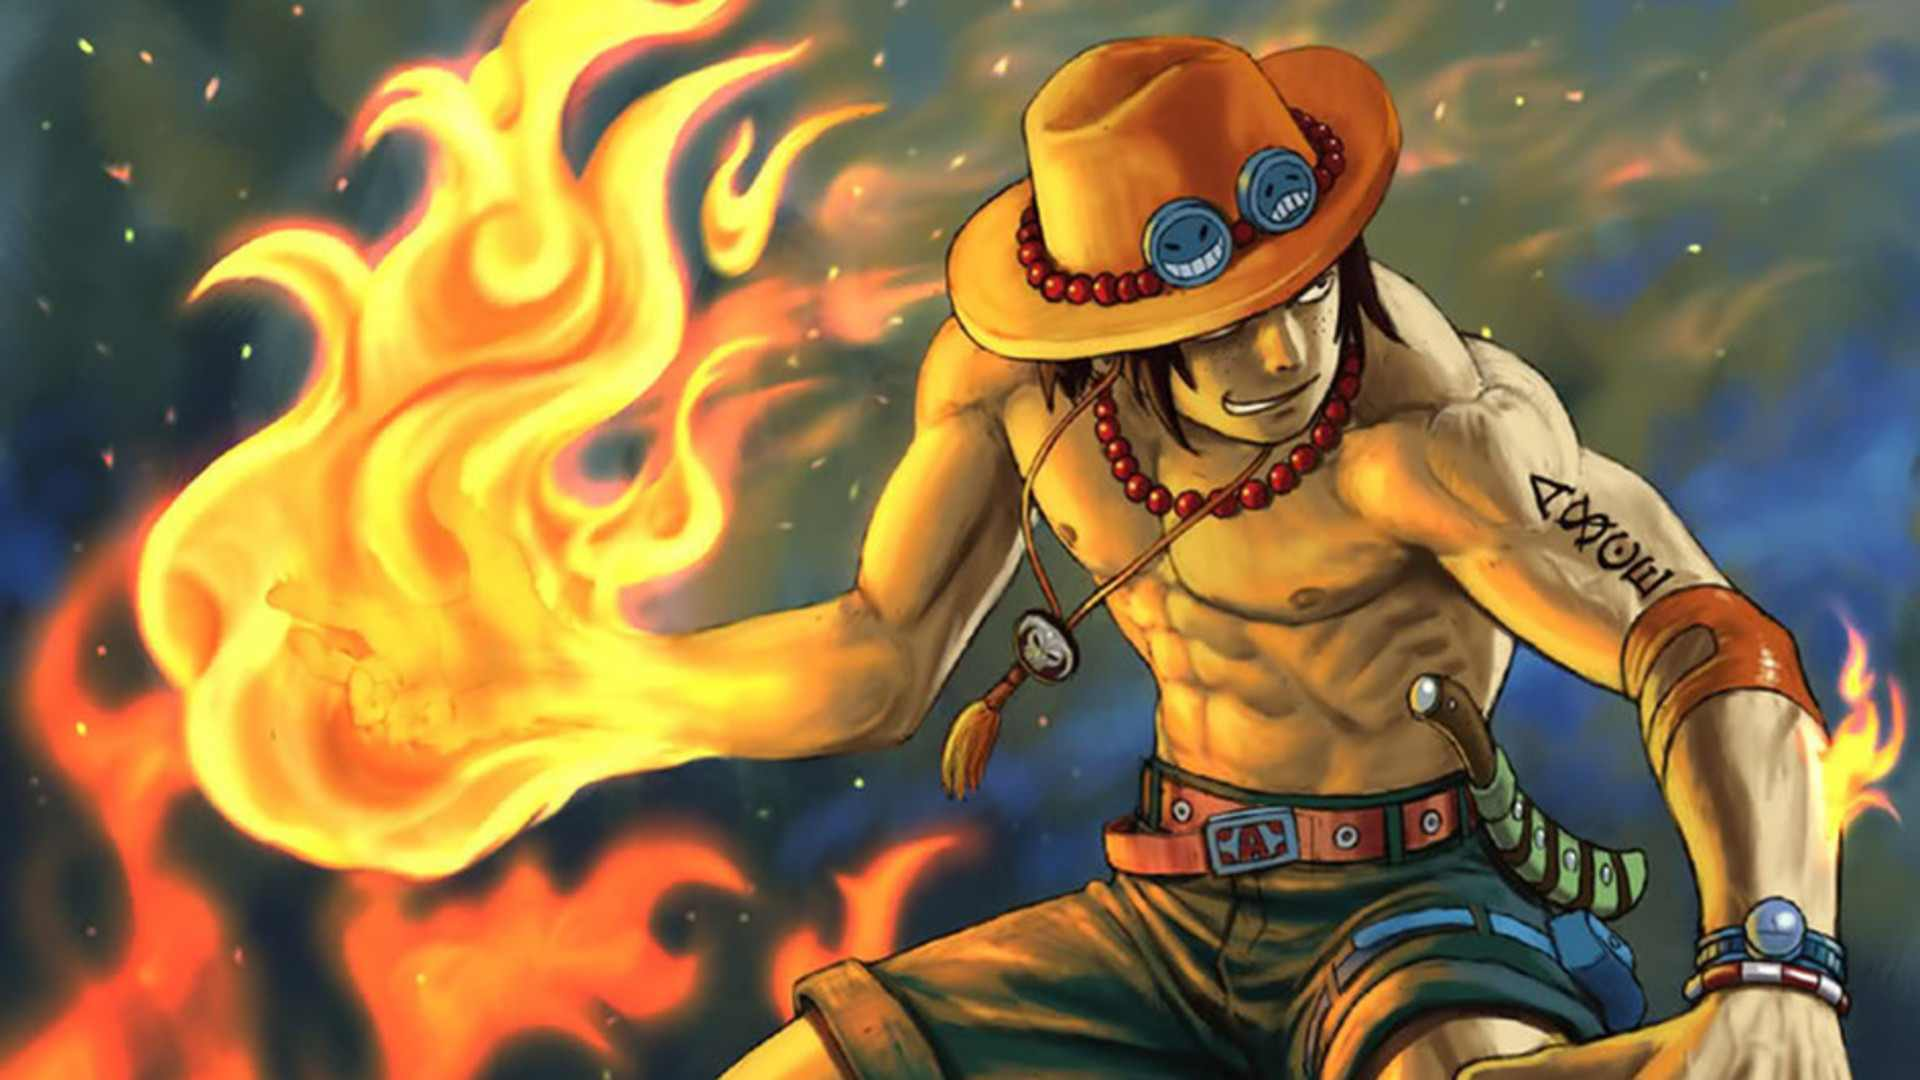 One Piece Ace Wallpapers 1920x1080